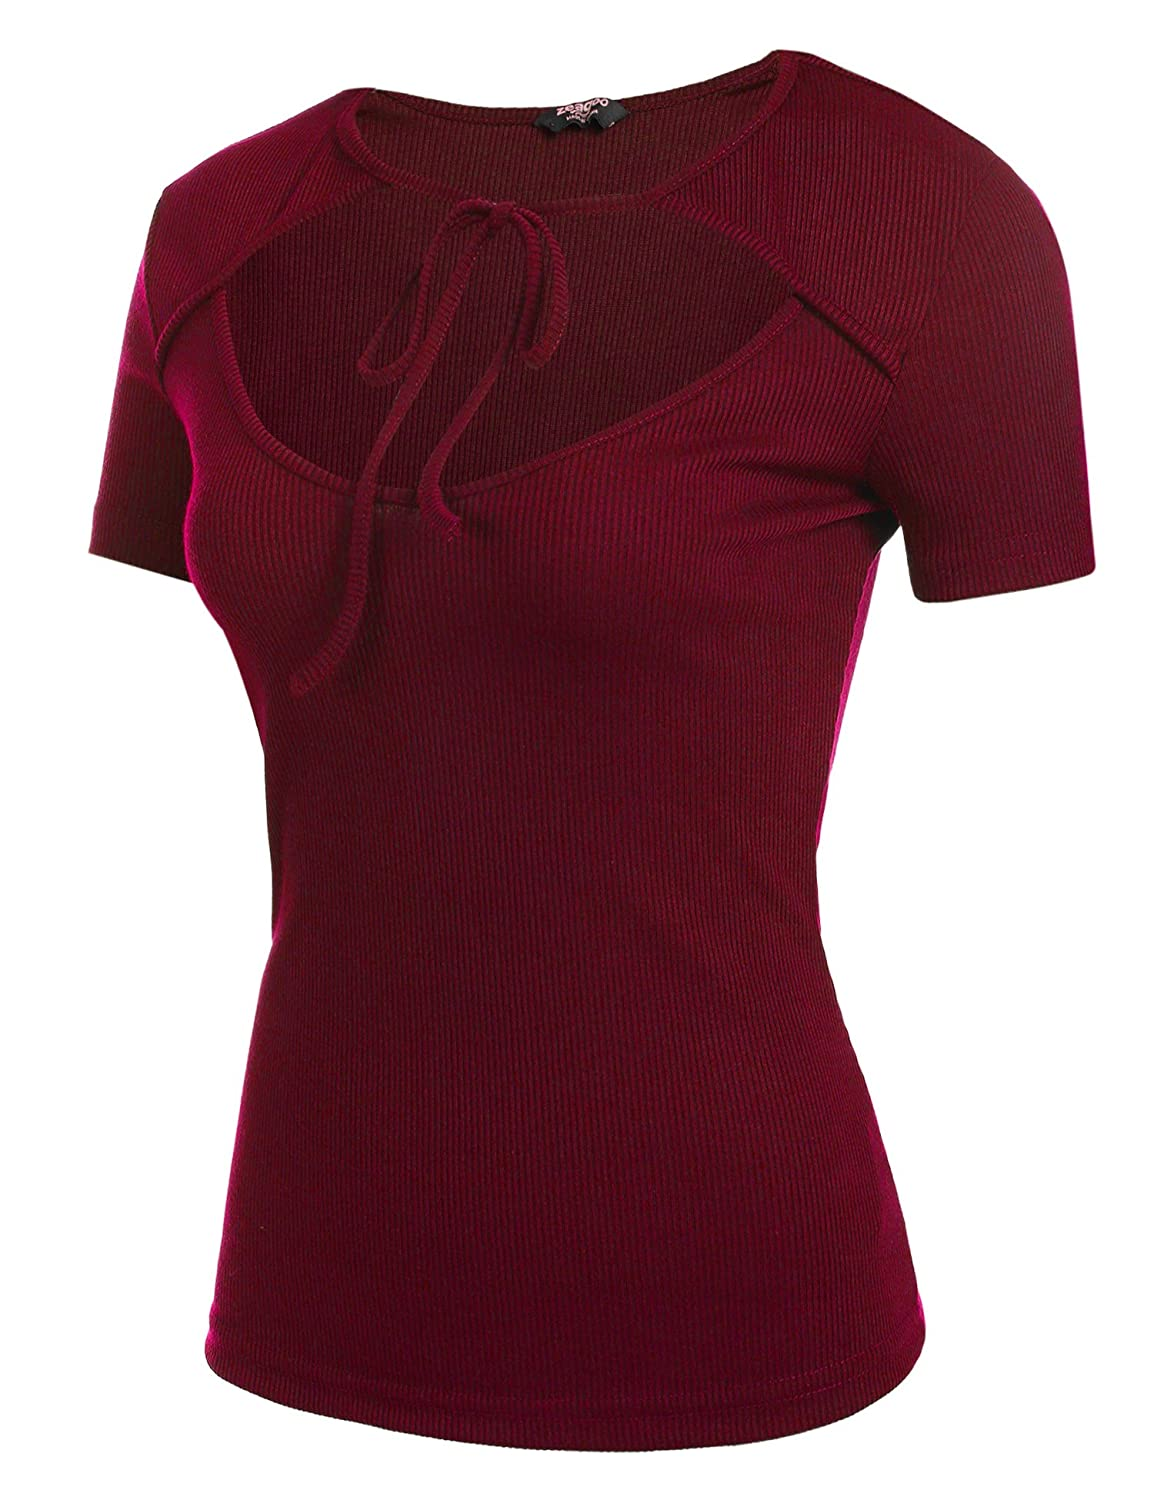 Buy Zeagoo Women S Hollow Out Lace Up Loose Knitted T Shirts Tunic Top Red Xl At Amazon In